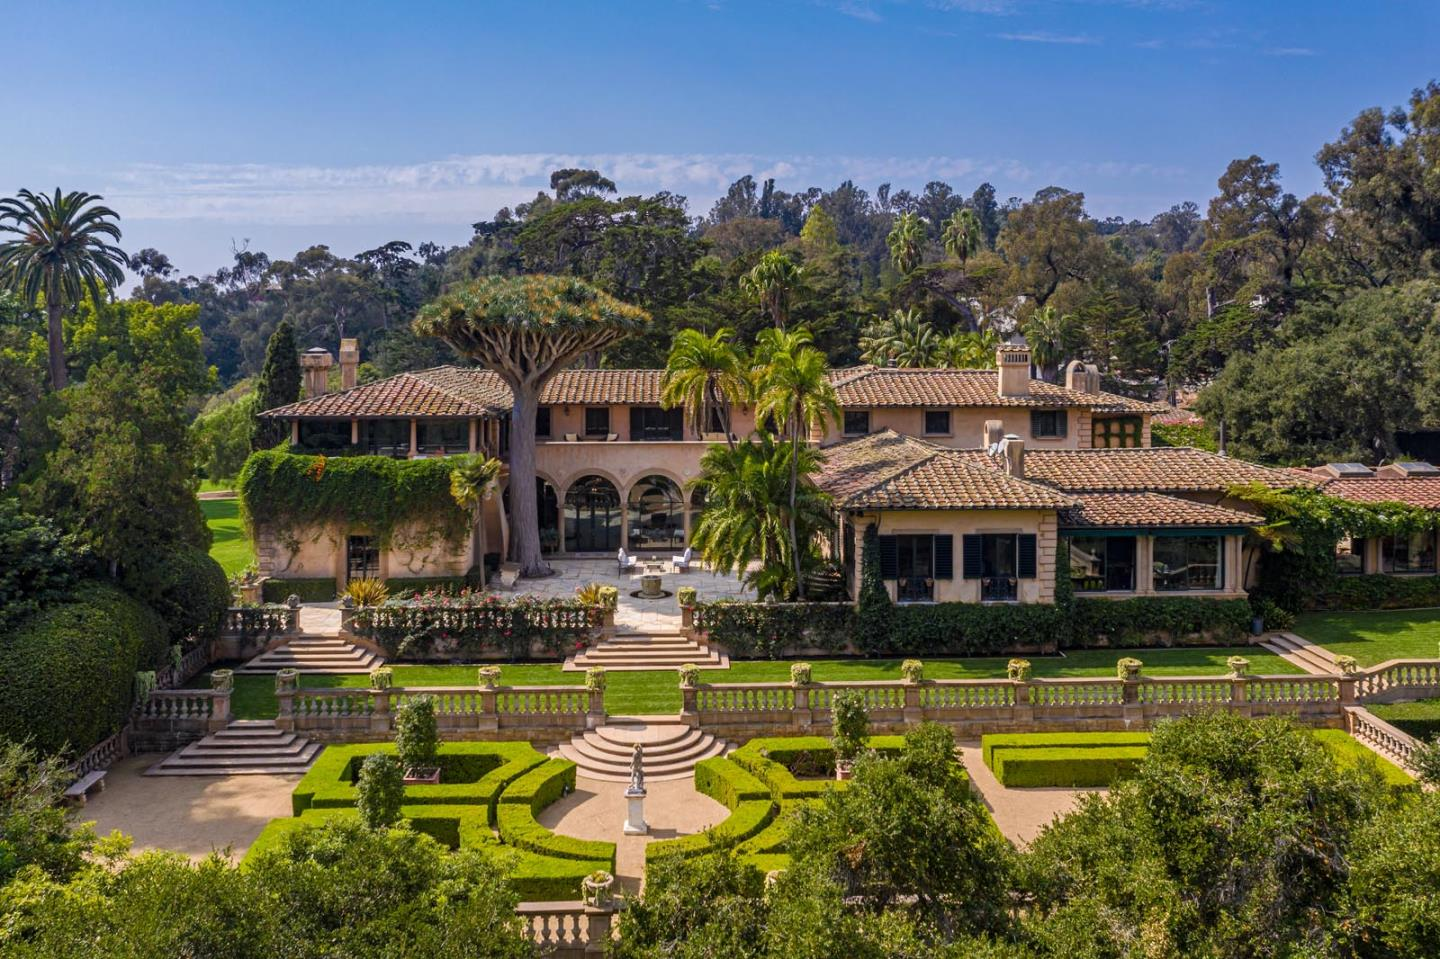 2845 Sycamore Canyon RD, MONTECITO, California 93108, 8 Bedrooms Bedrooms, ,9 BathroomsBathrooms,Residential,For Sale,2845 Sycamore Canyon RD,ML81805655